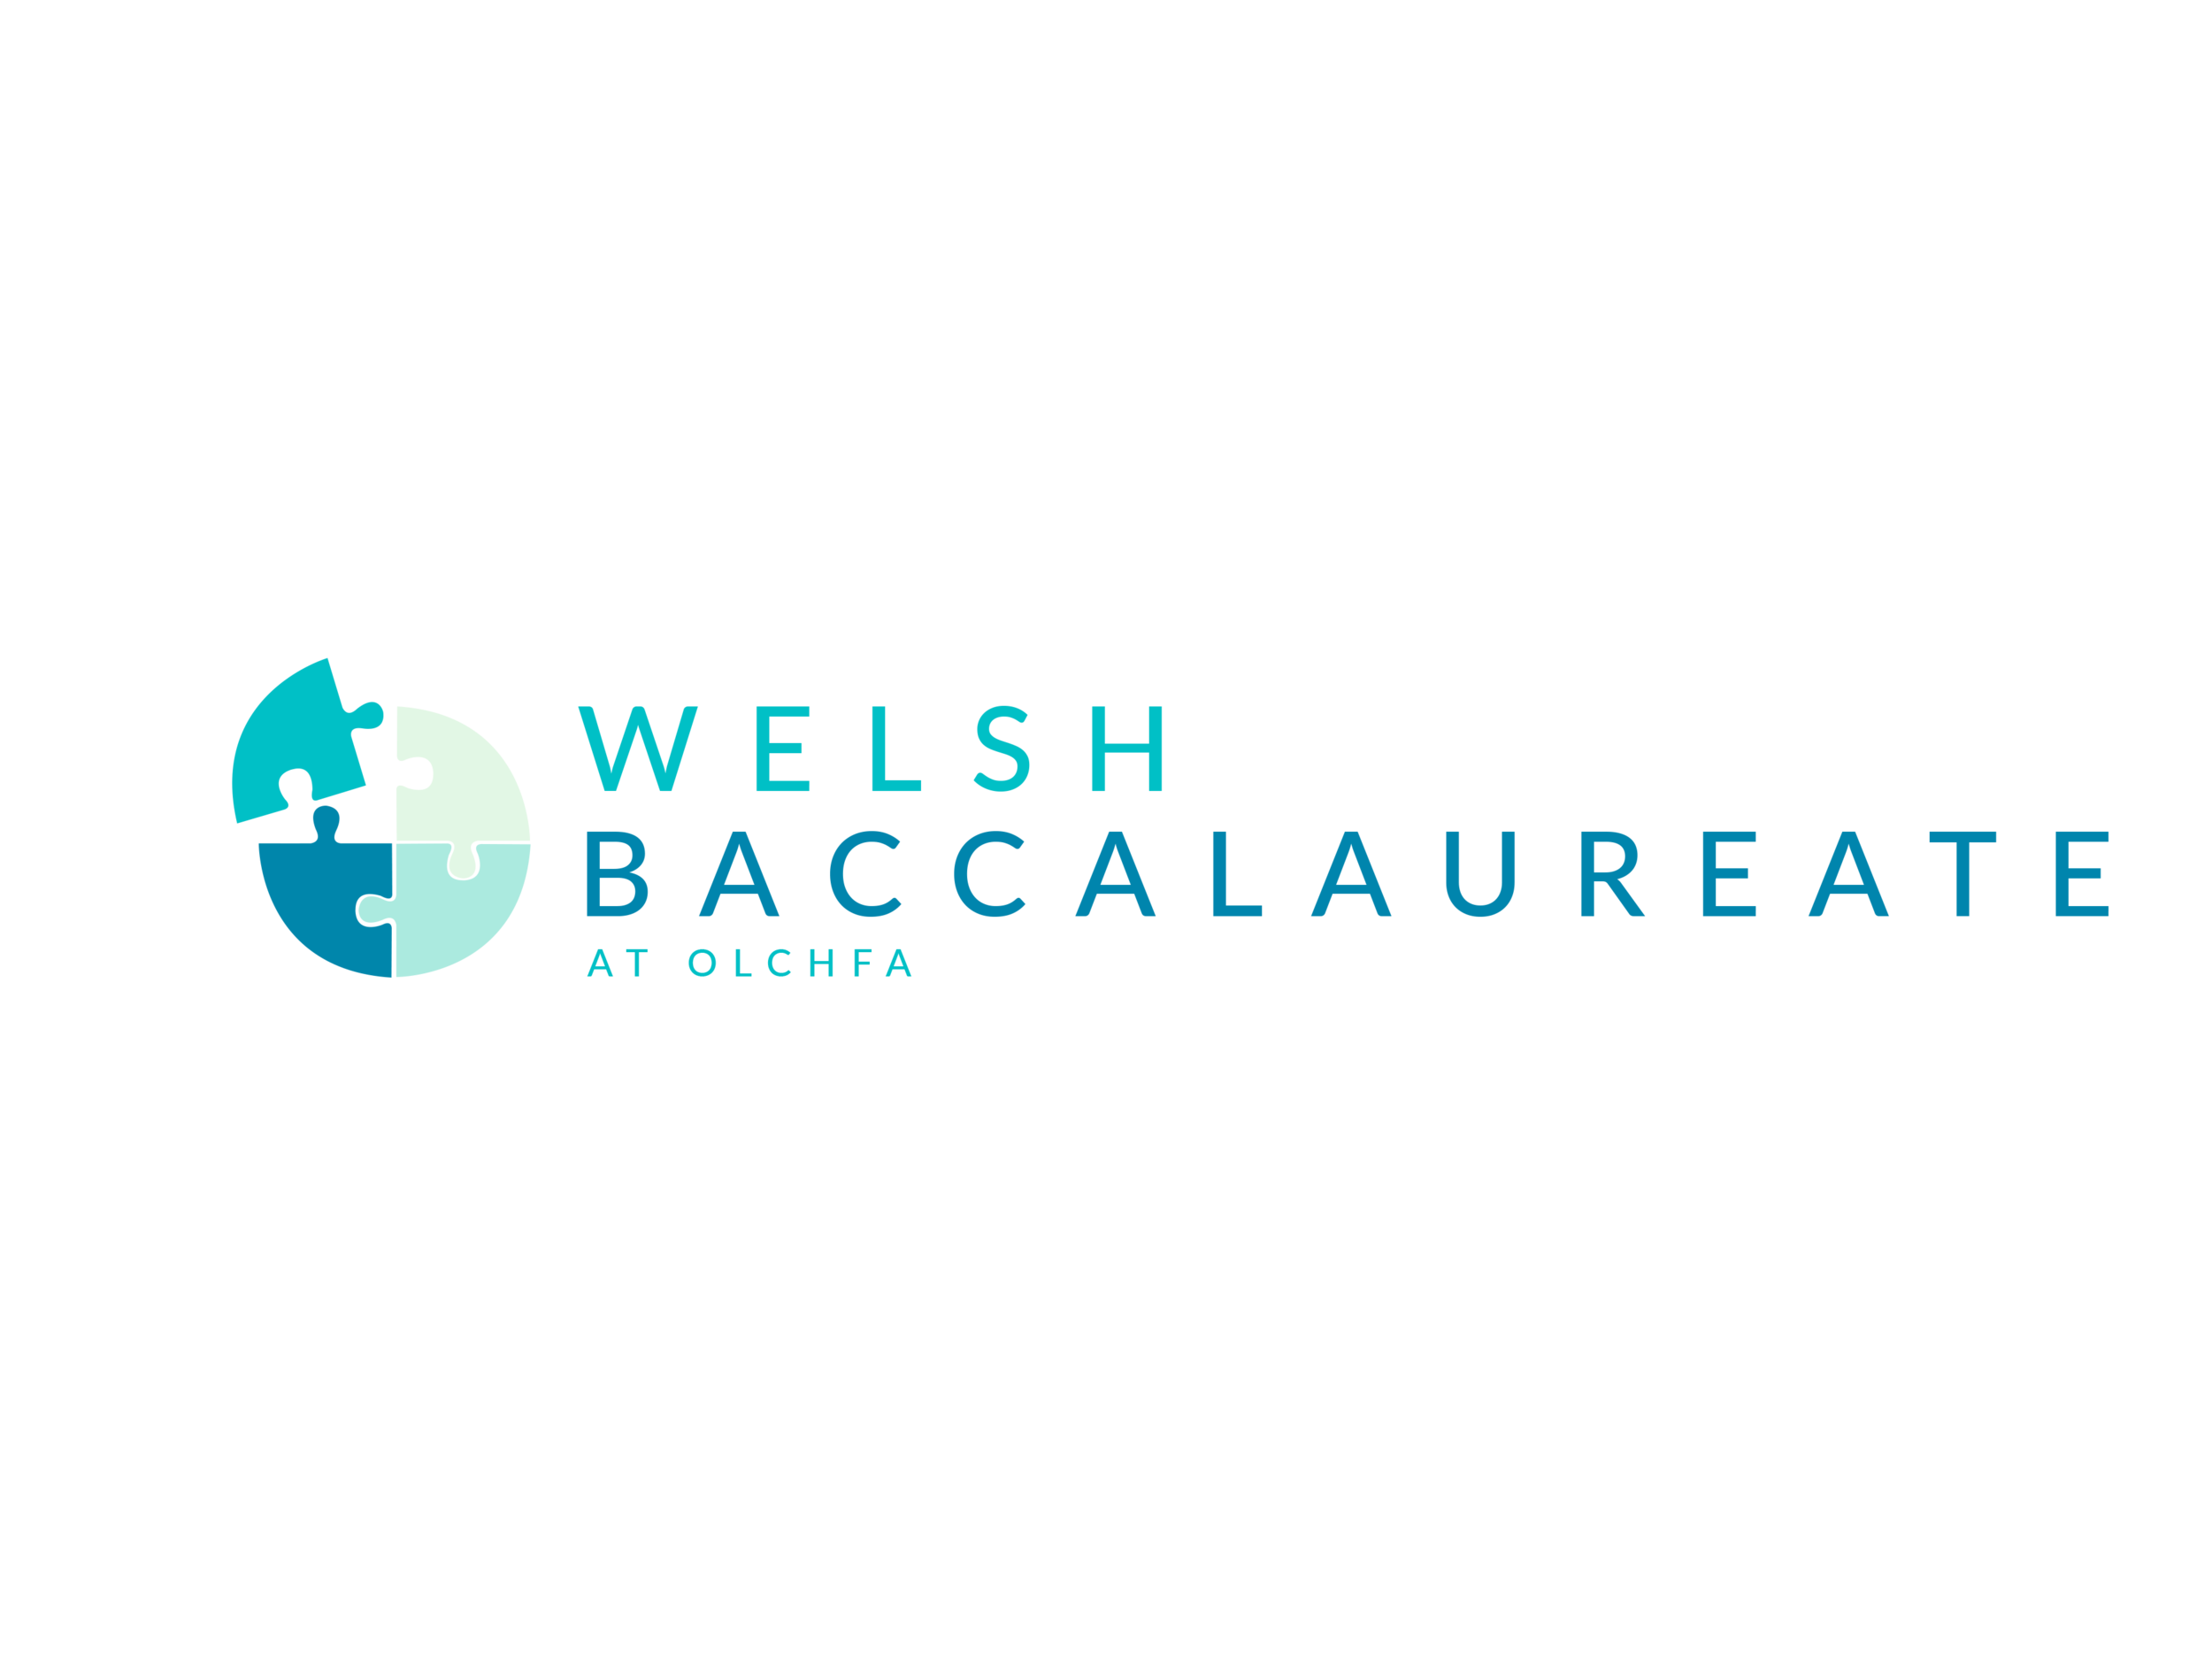 welsh bacs logoPNG.png